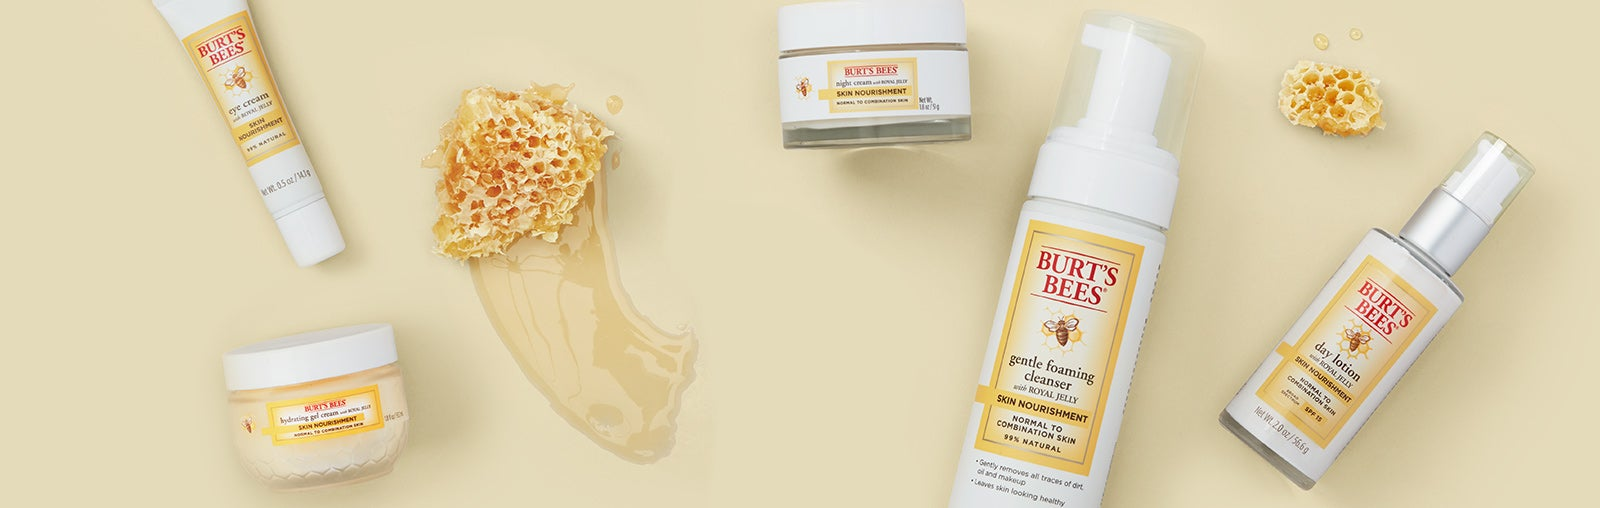 headers-productos-skinNourishment